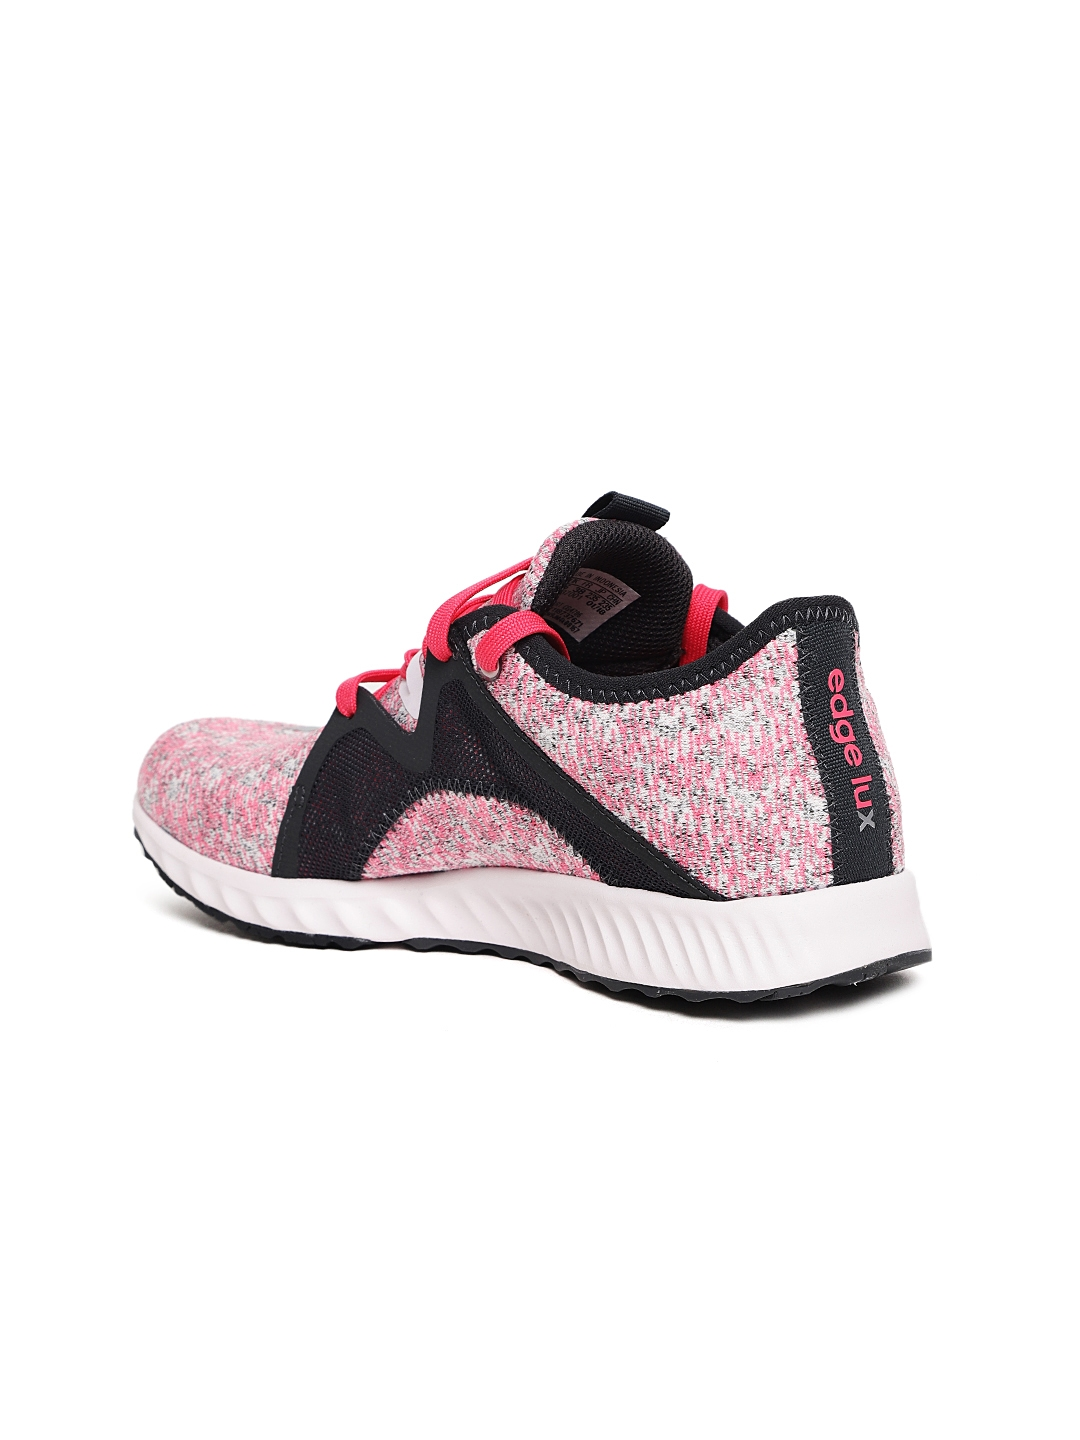 2fddac1f7c1 Buy ADIDAS Women Pink   Black Edge Lux 2 Woven Design Running Shoes ...